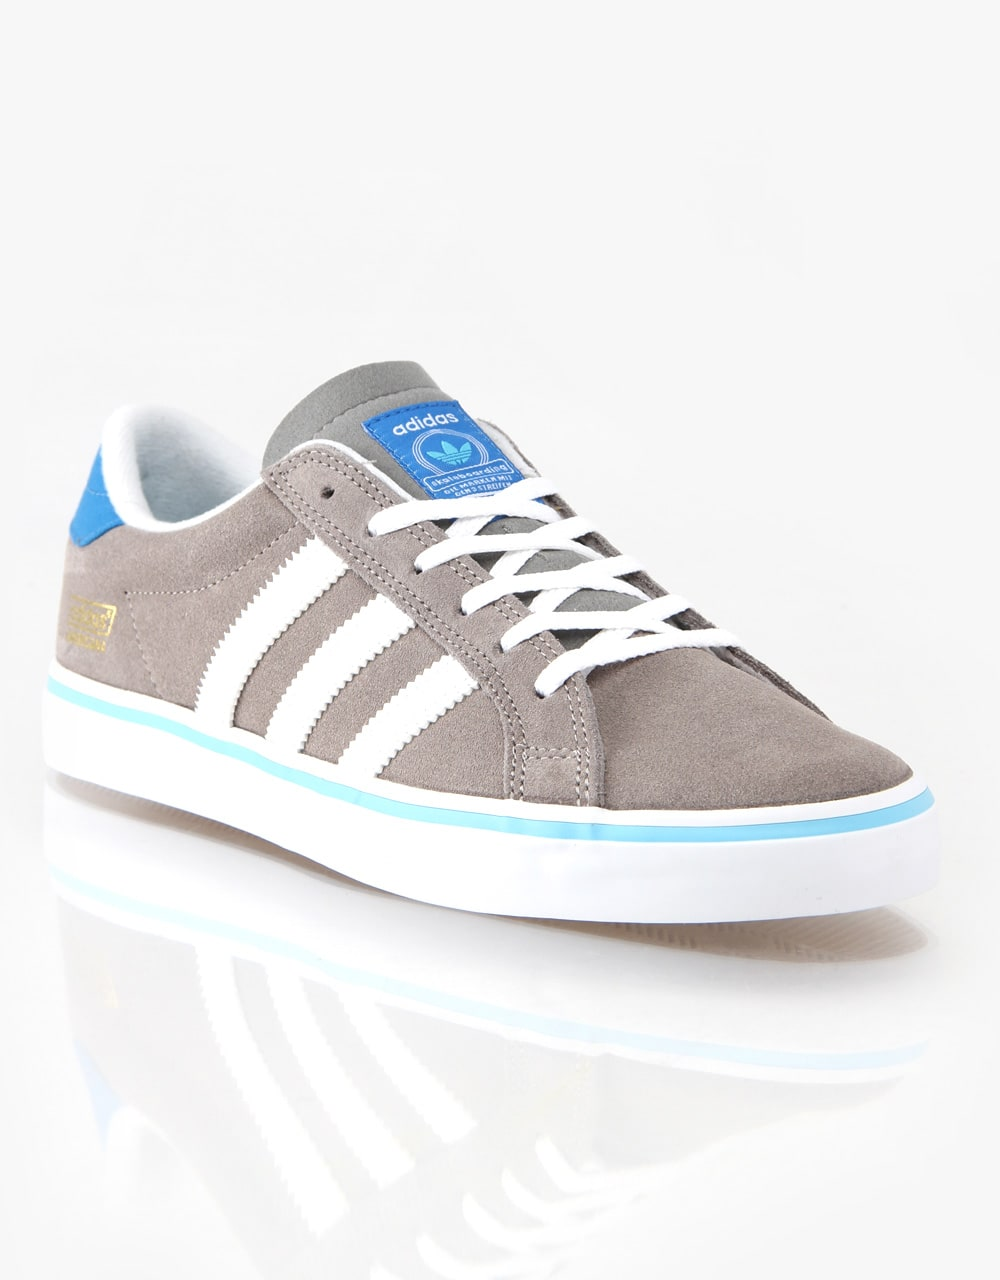 online retailer a435a 43384 Adidas Americana Vin Skate Shoes - GreyWhiteBluebird  Skate Shoes  Mens  Skateboarding Trainers  Footwear  Route One